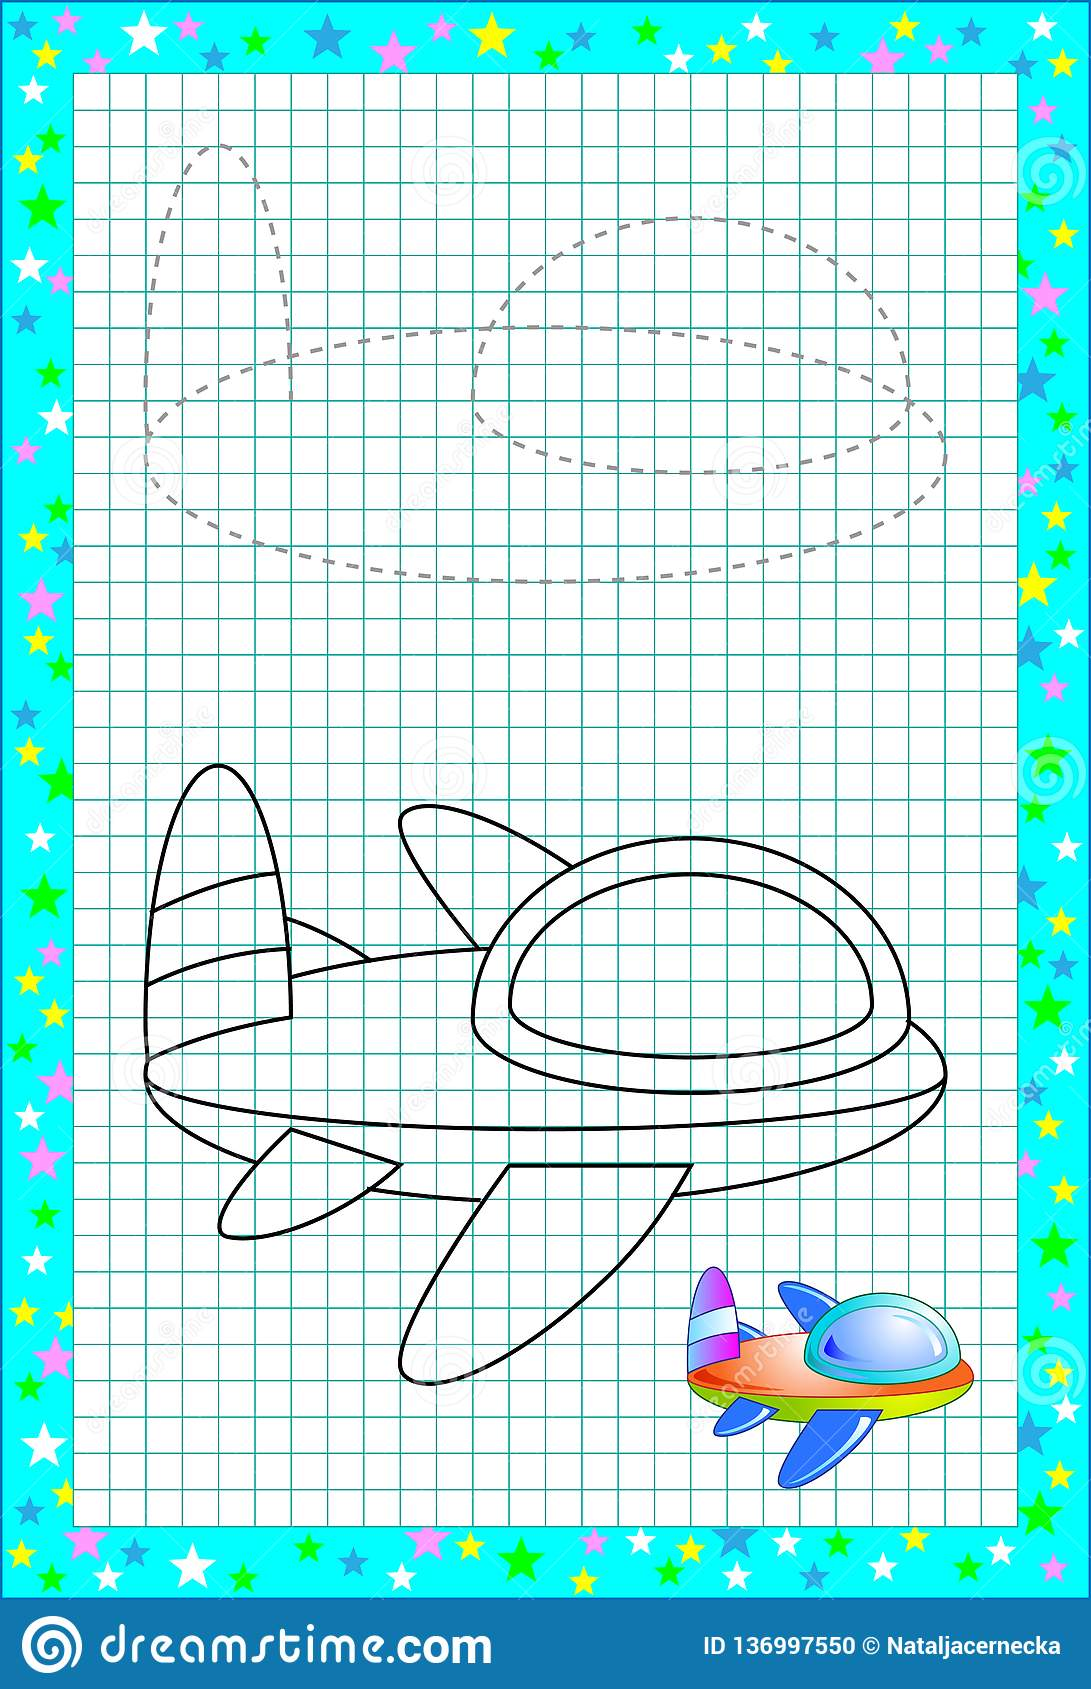 Educational Page For Little Children On Square Paper Need To Draw And Paint Cute Airplane By Copy Developing Baby Skills Stock Vector Illustration Of Child Line 136997550